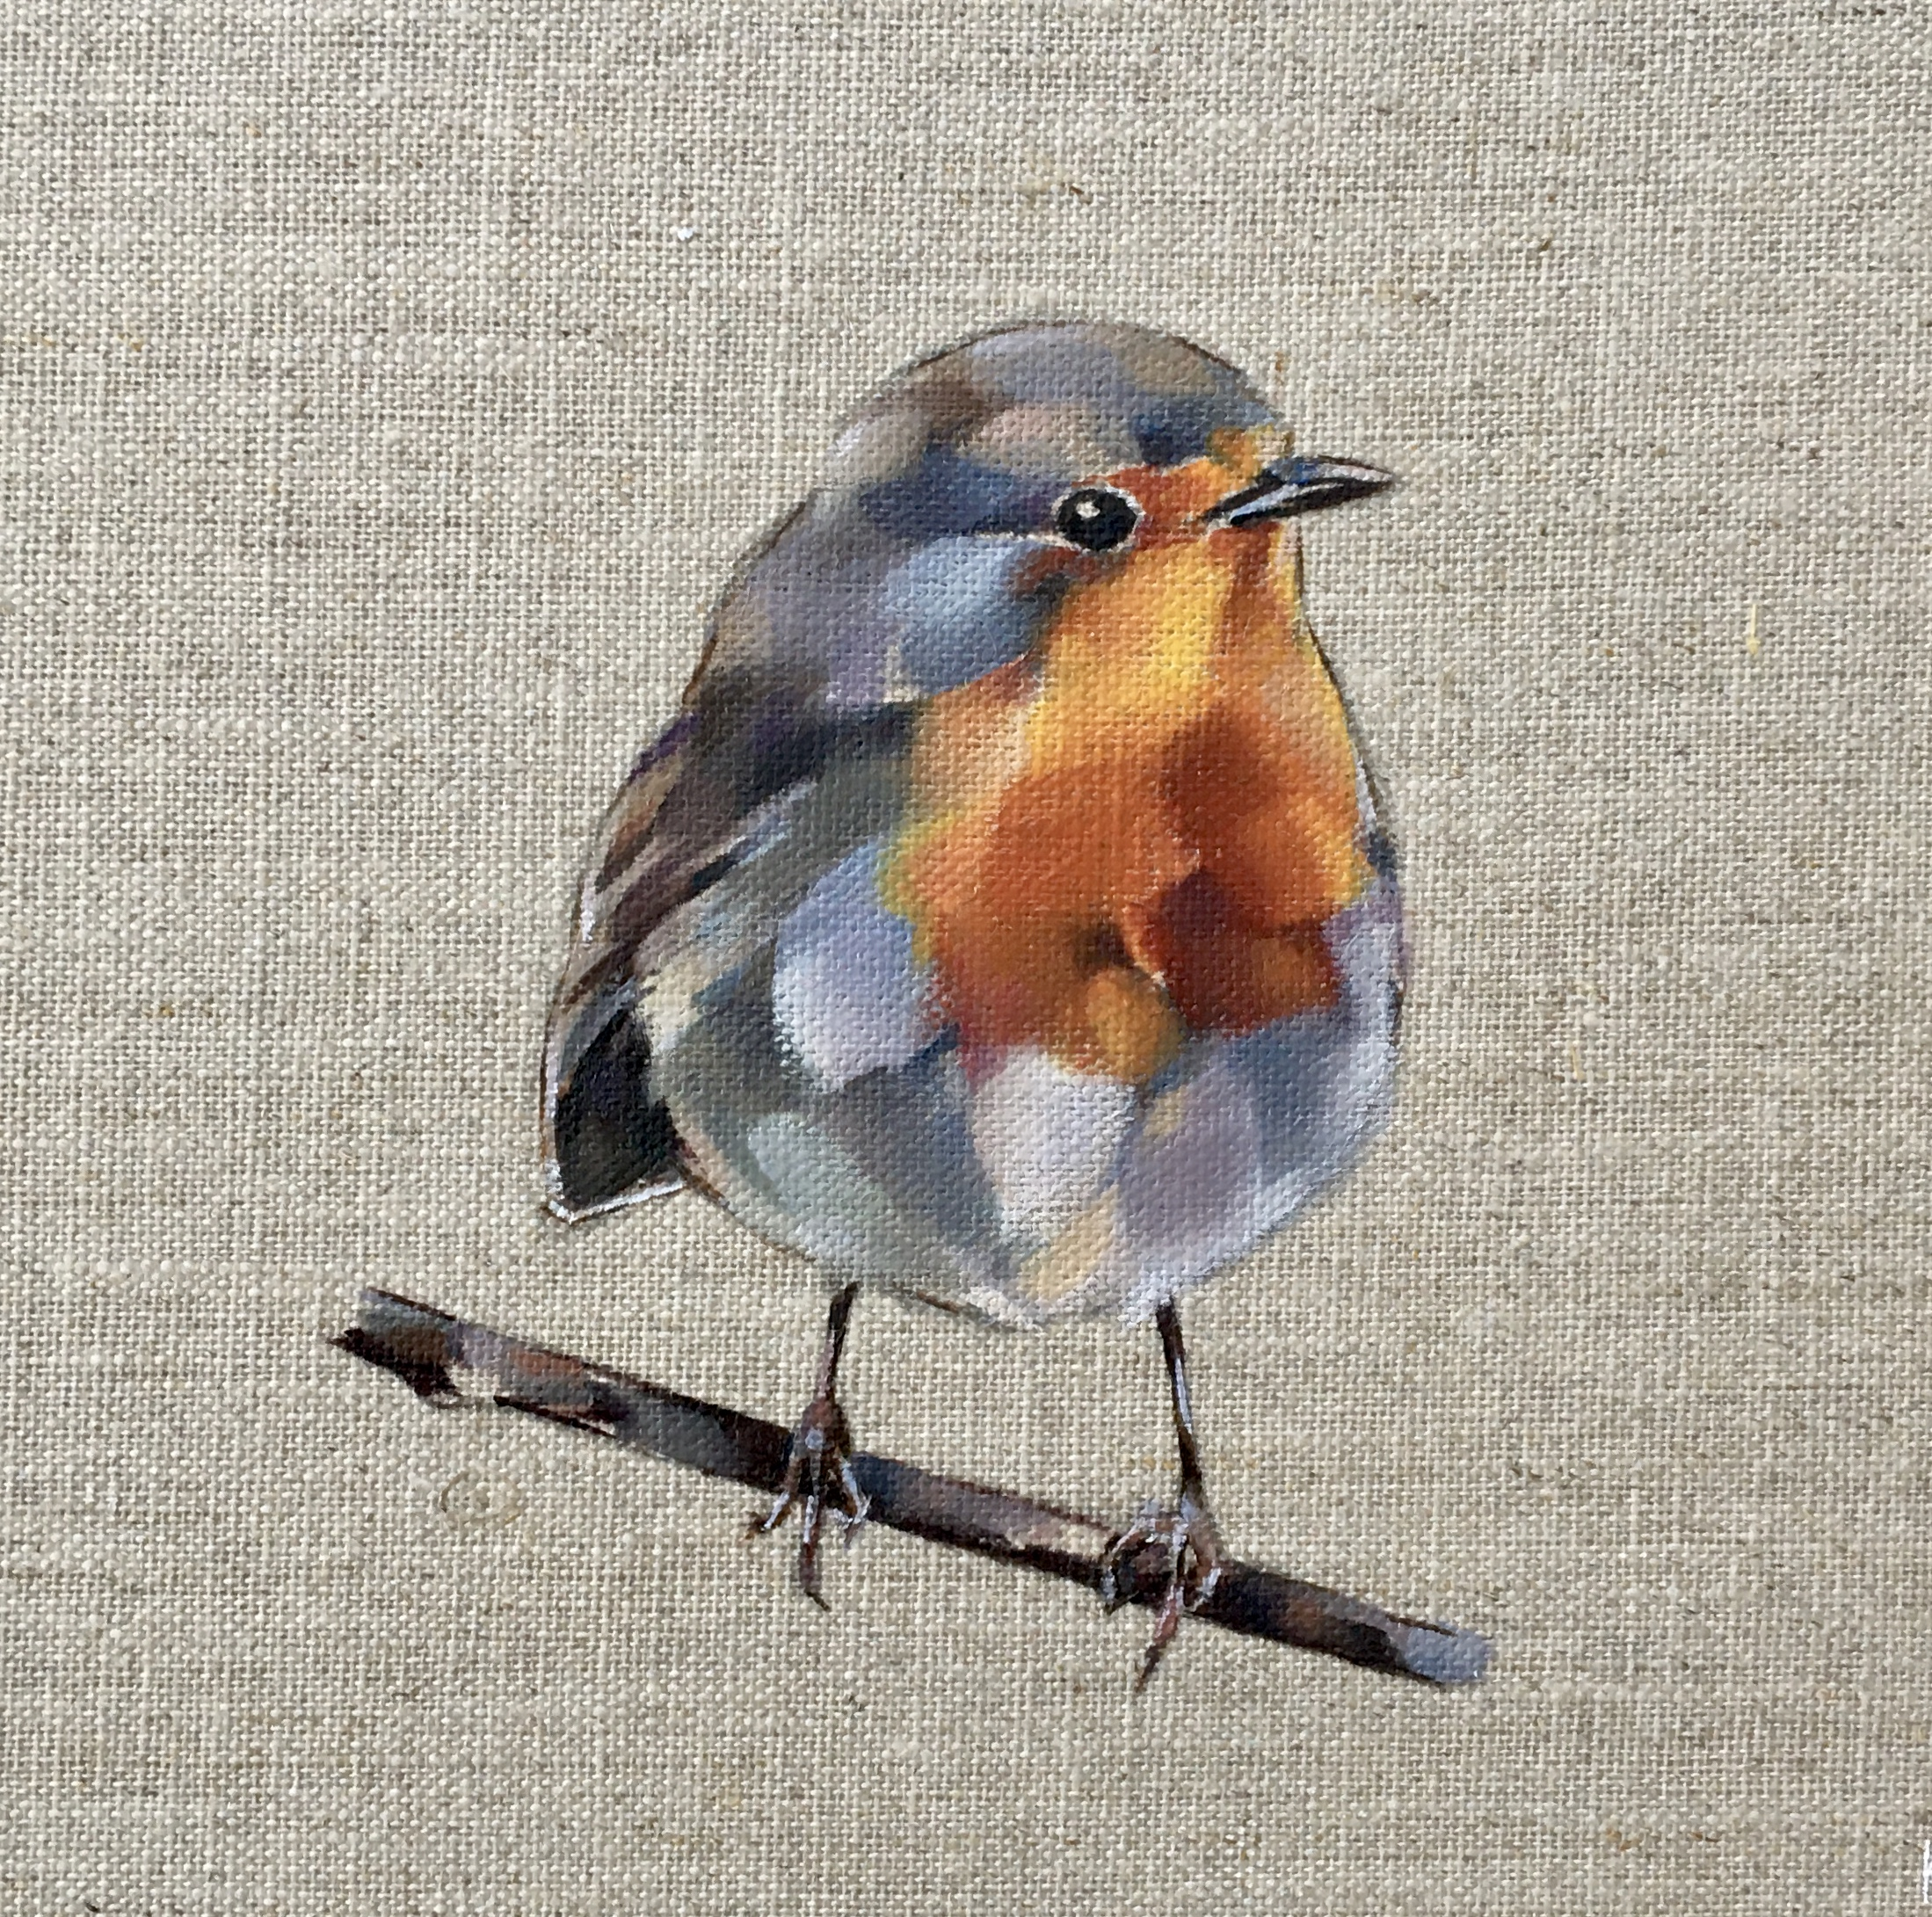 Joe Robin Redbreast